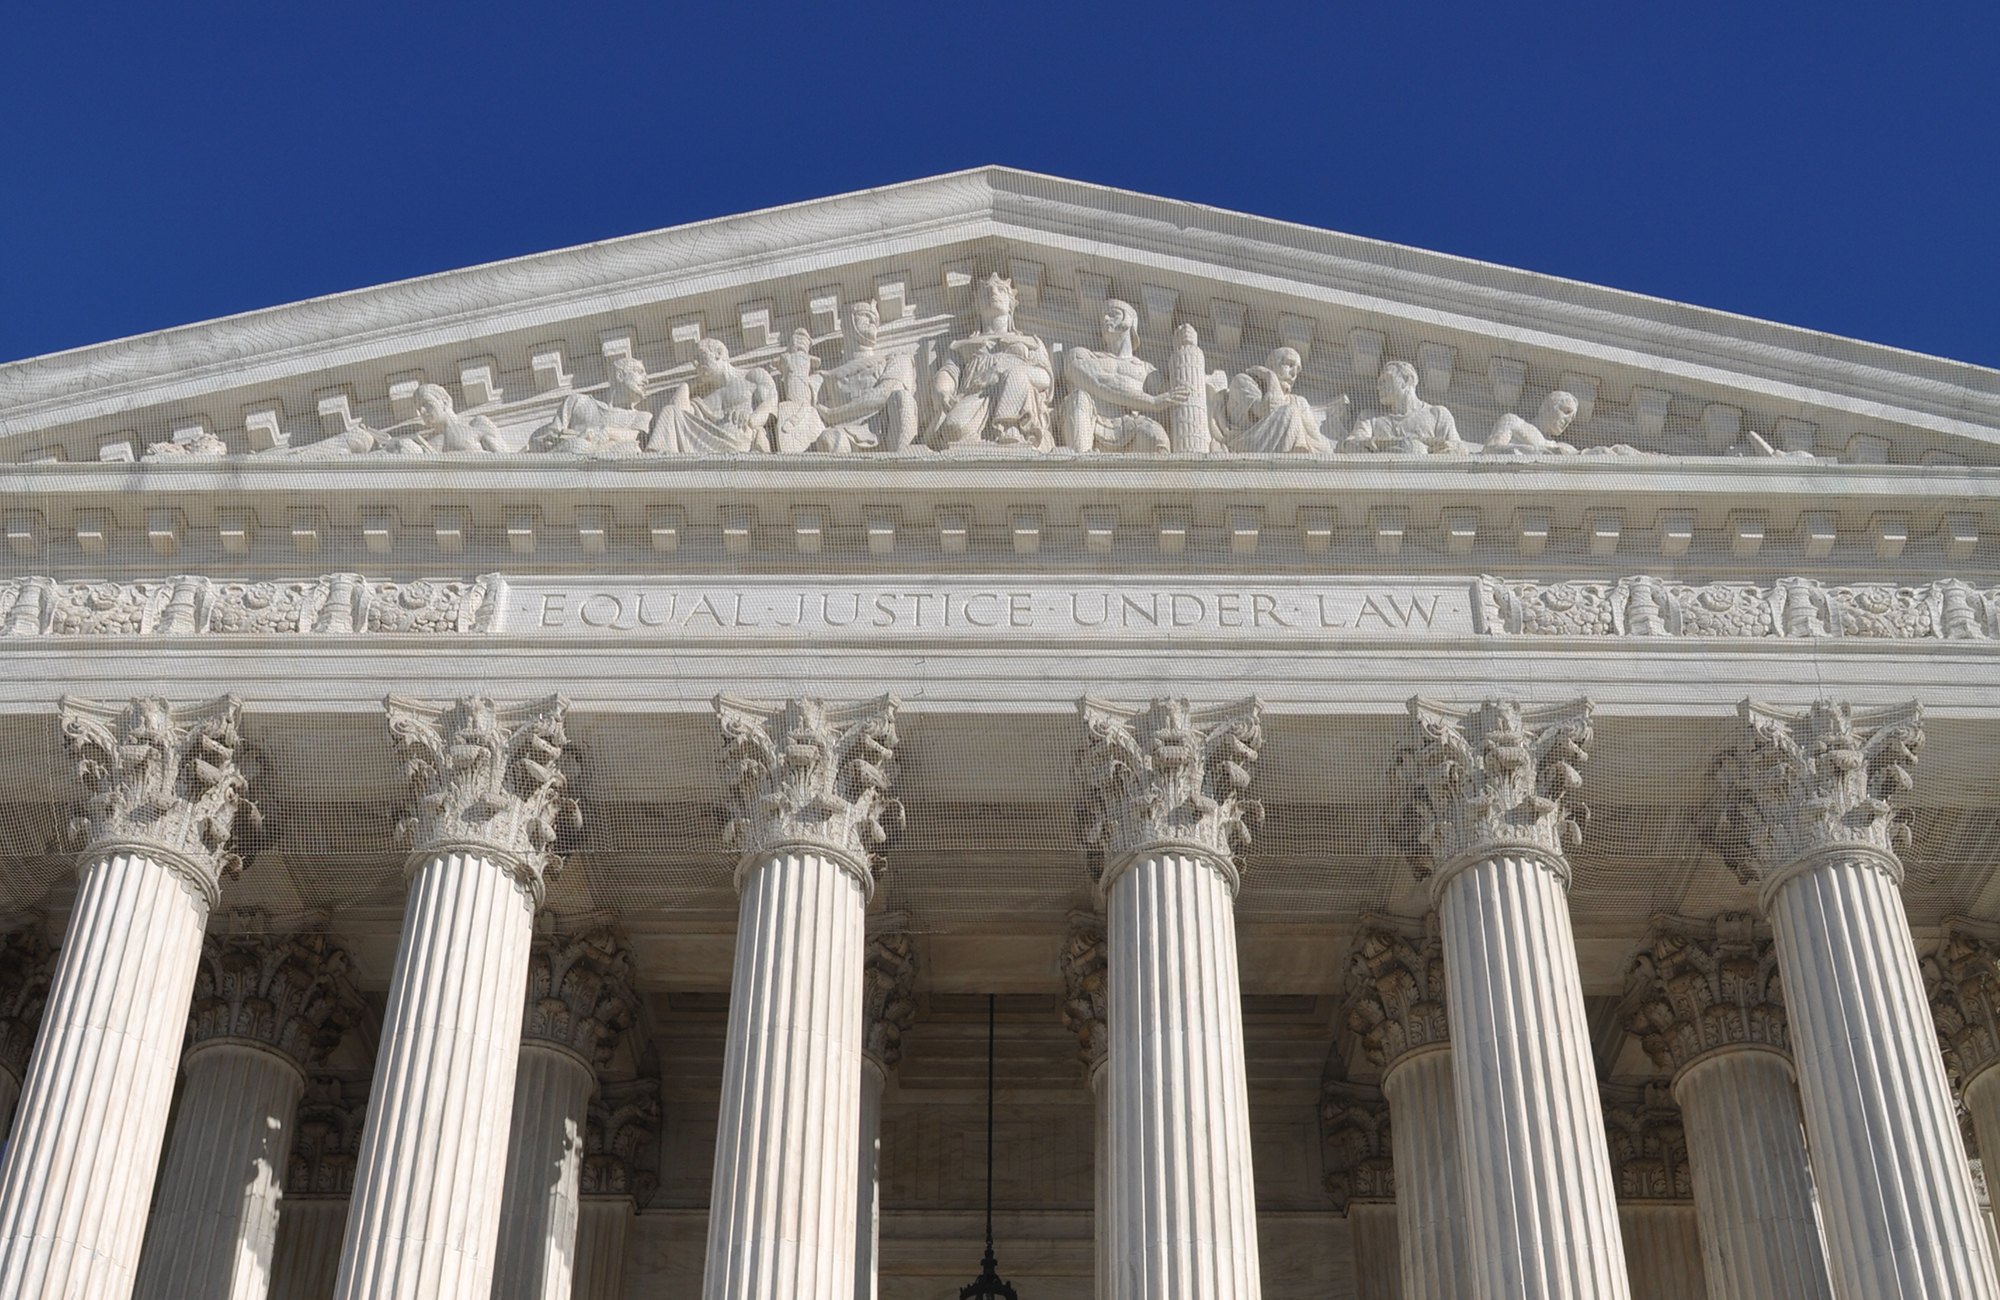 image of the entrance to the Supreme Court building